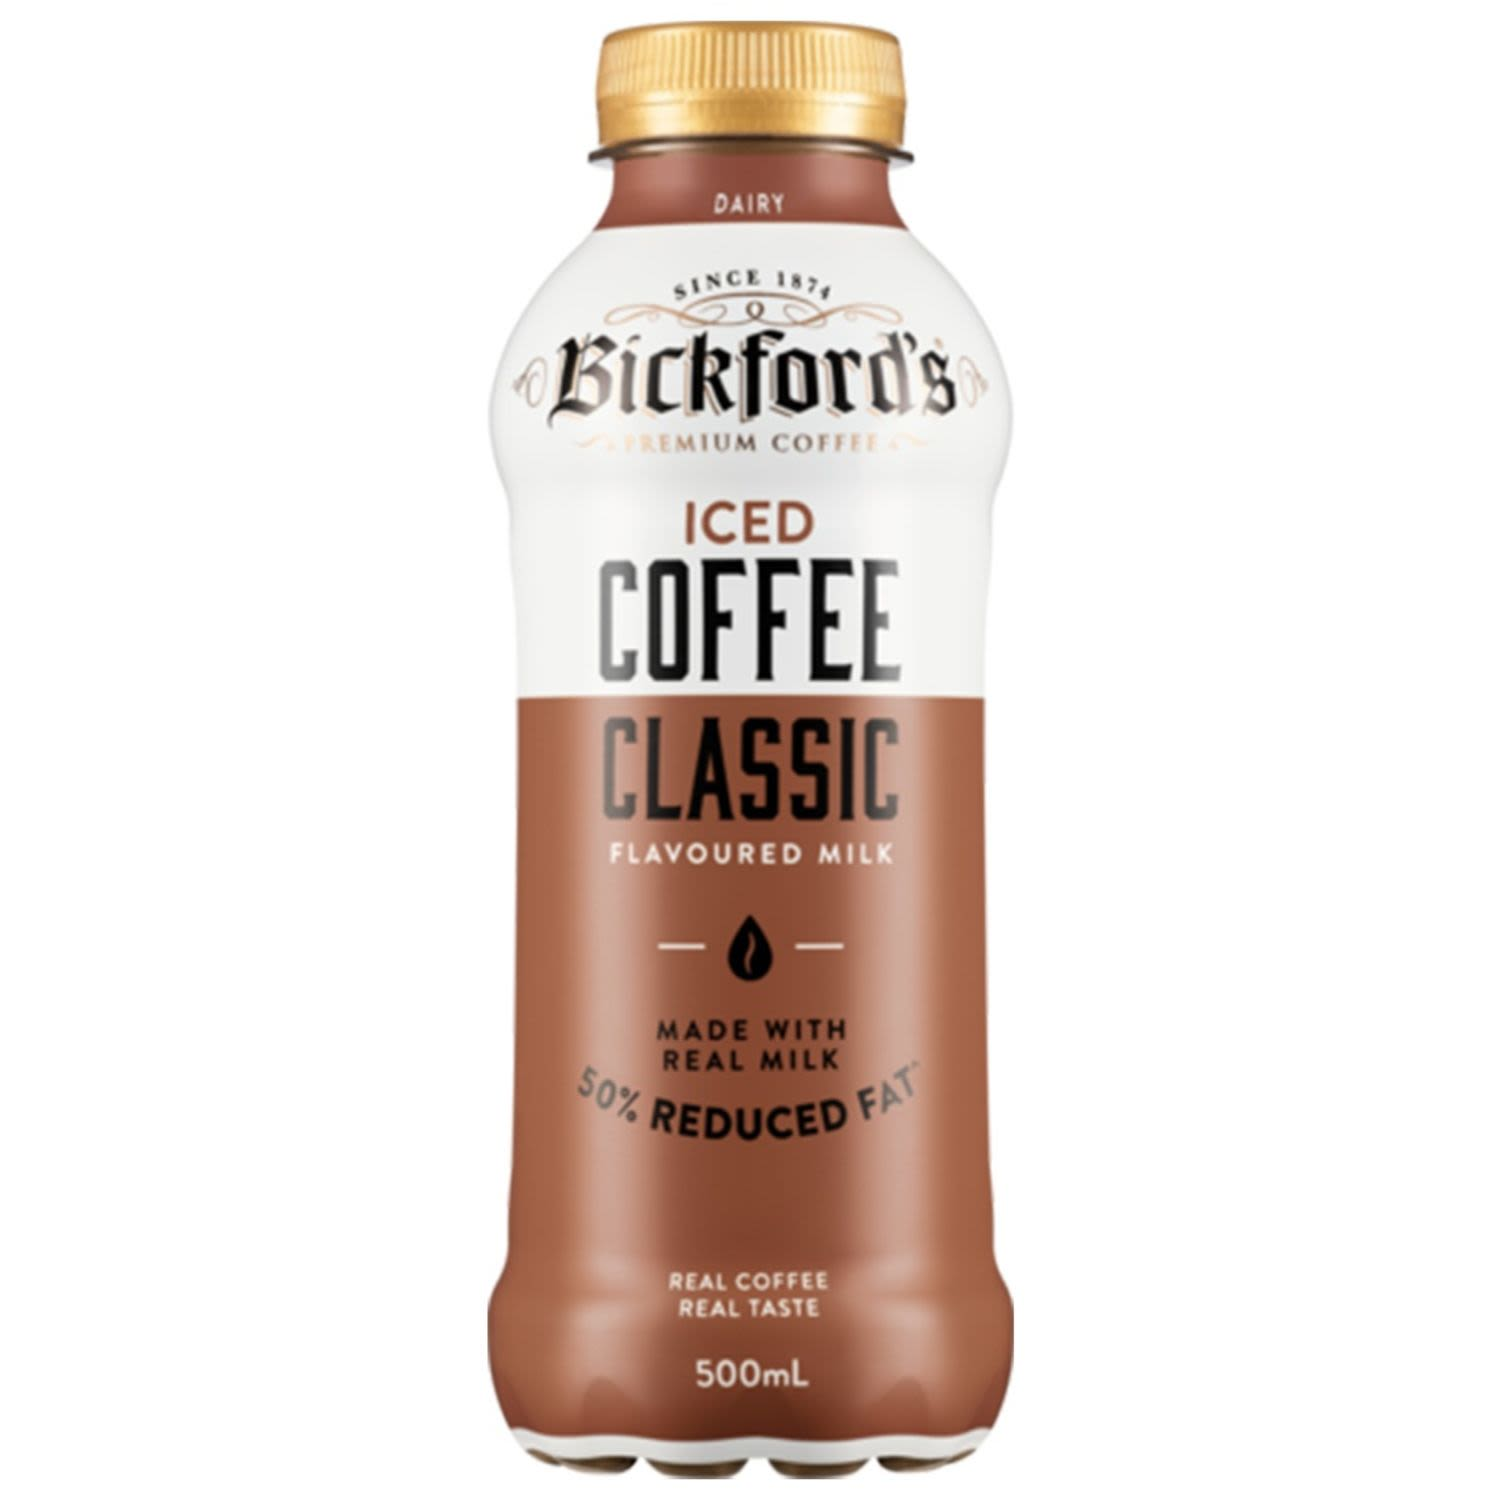 Bickford's Iced Coffee Classic, 500 Millilitre